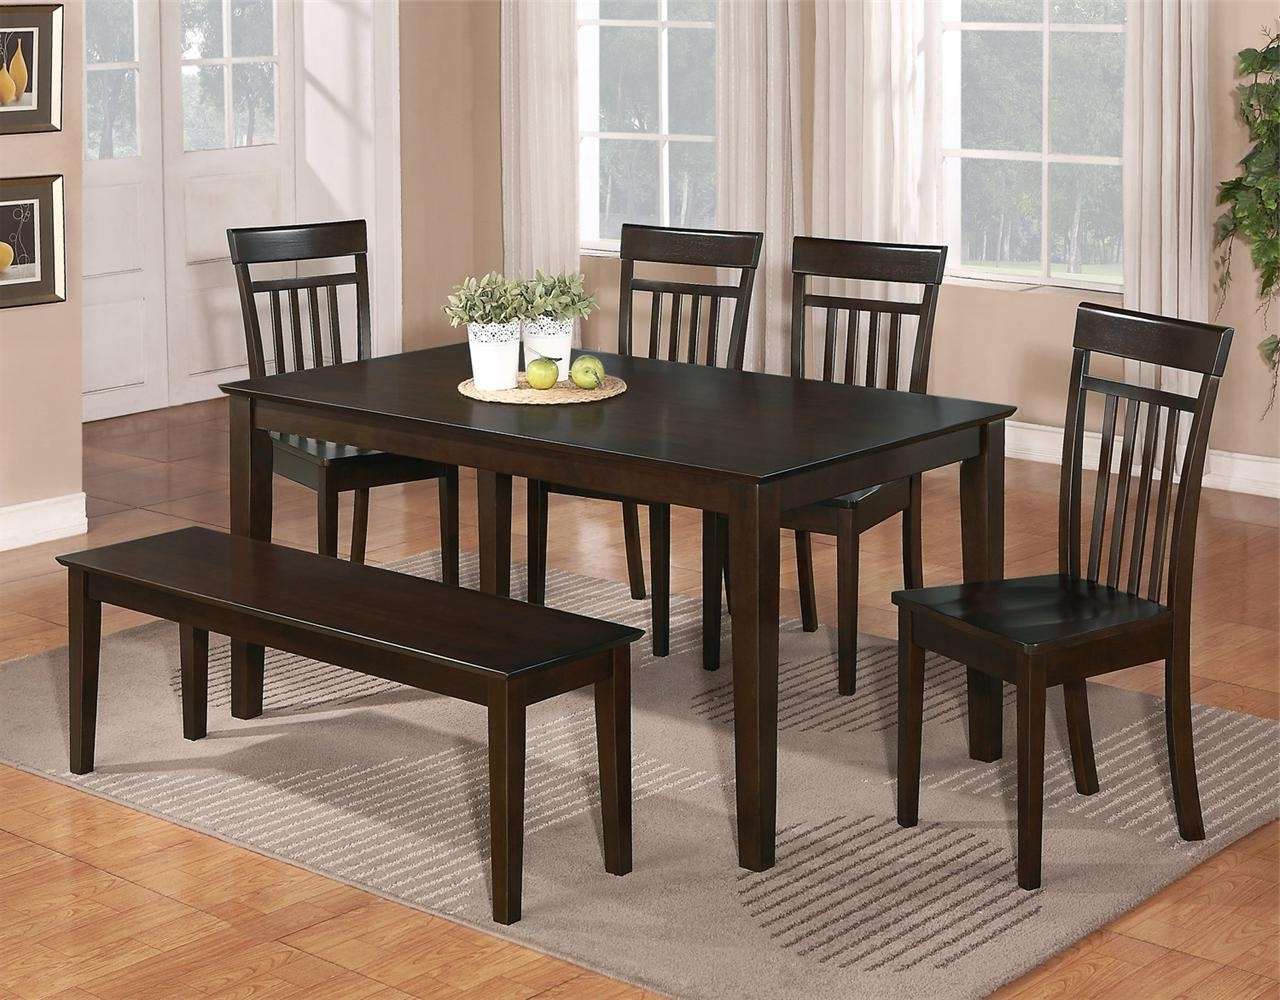 6 Pc Dinette Kitchen Dining Room Set Table W/4 Wood Chair, Dining With Trendy Small Dining Tables And Bench Sets (View 3 of 25)